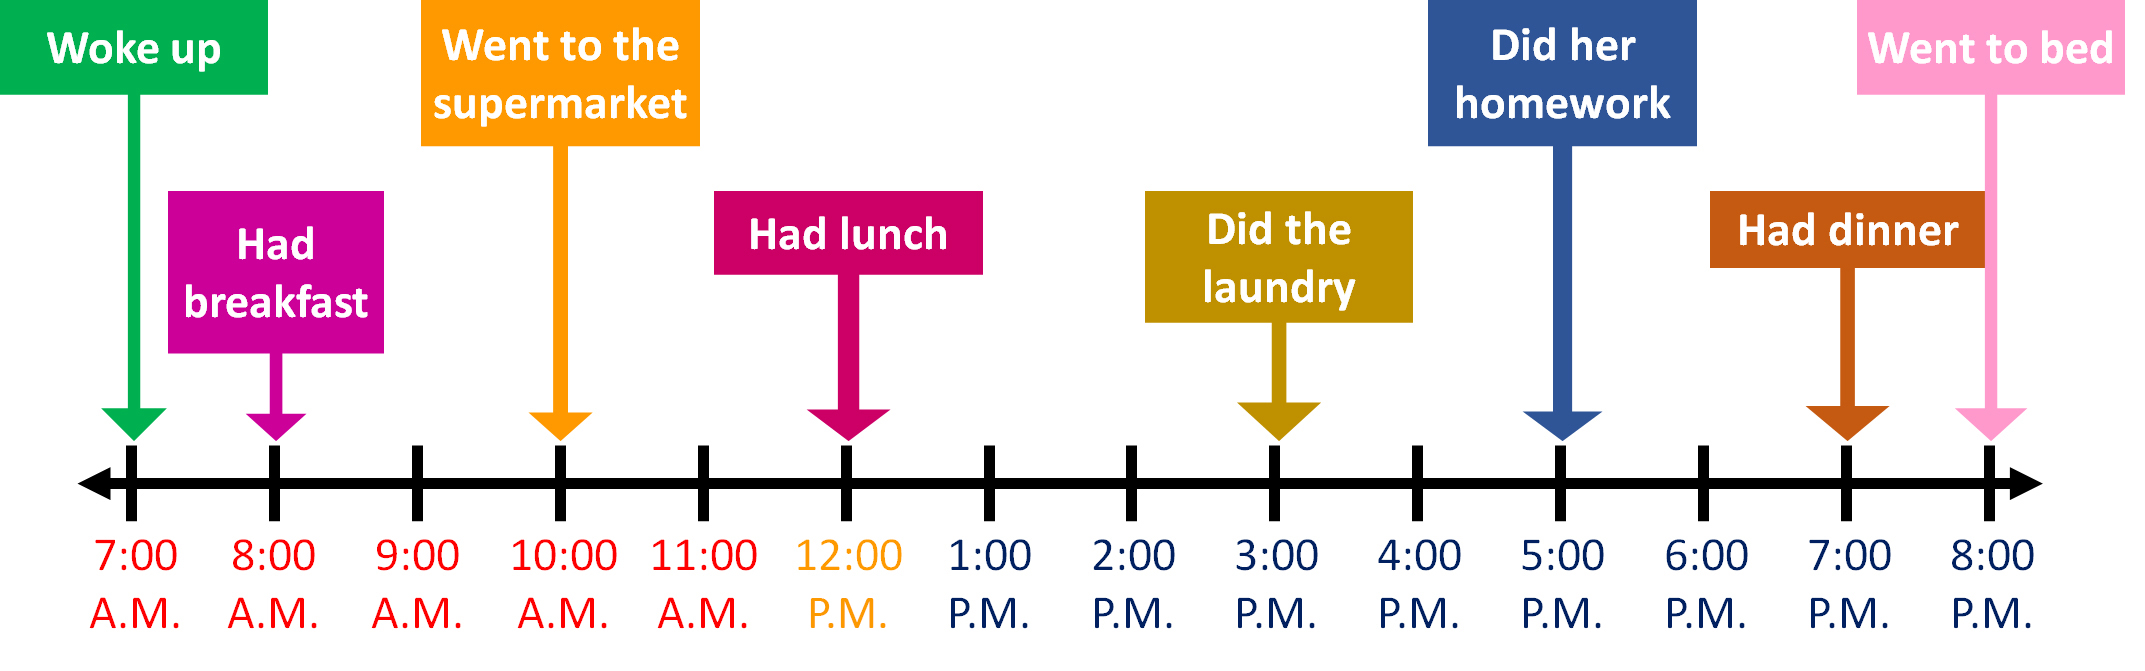 timeline of a student's day